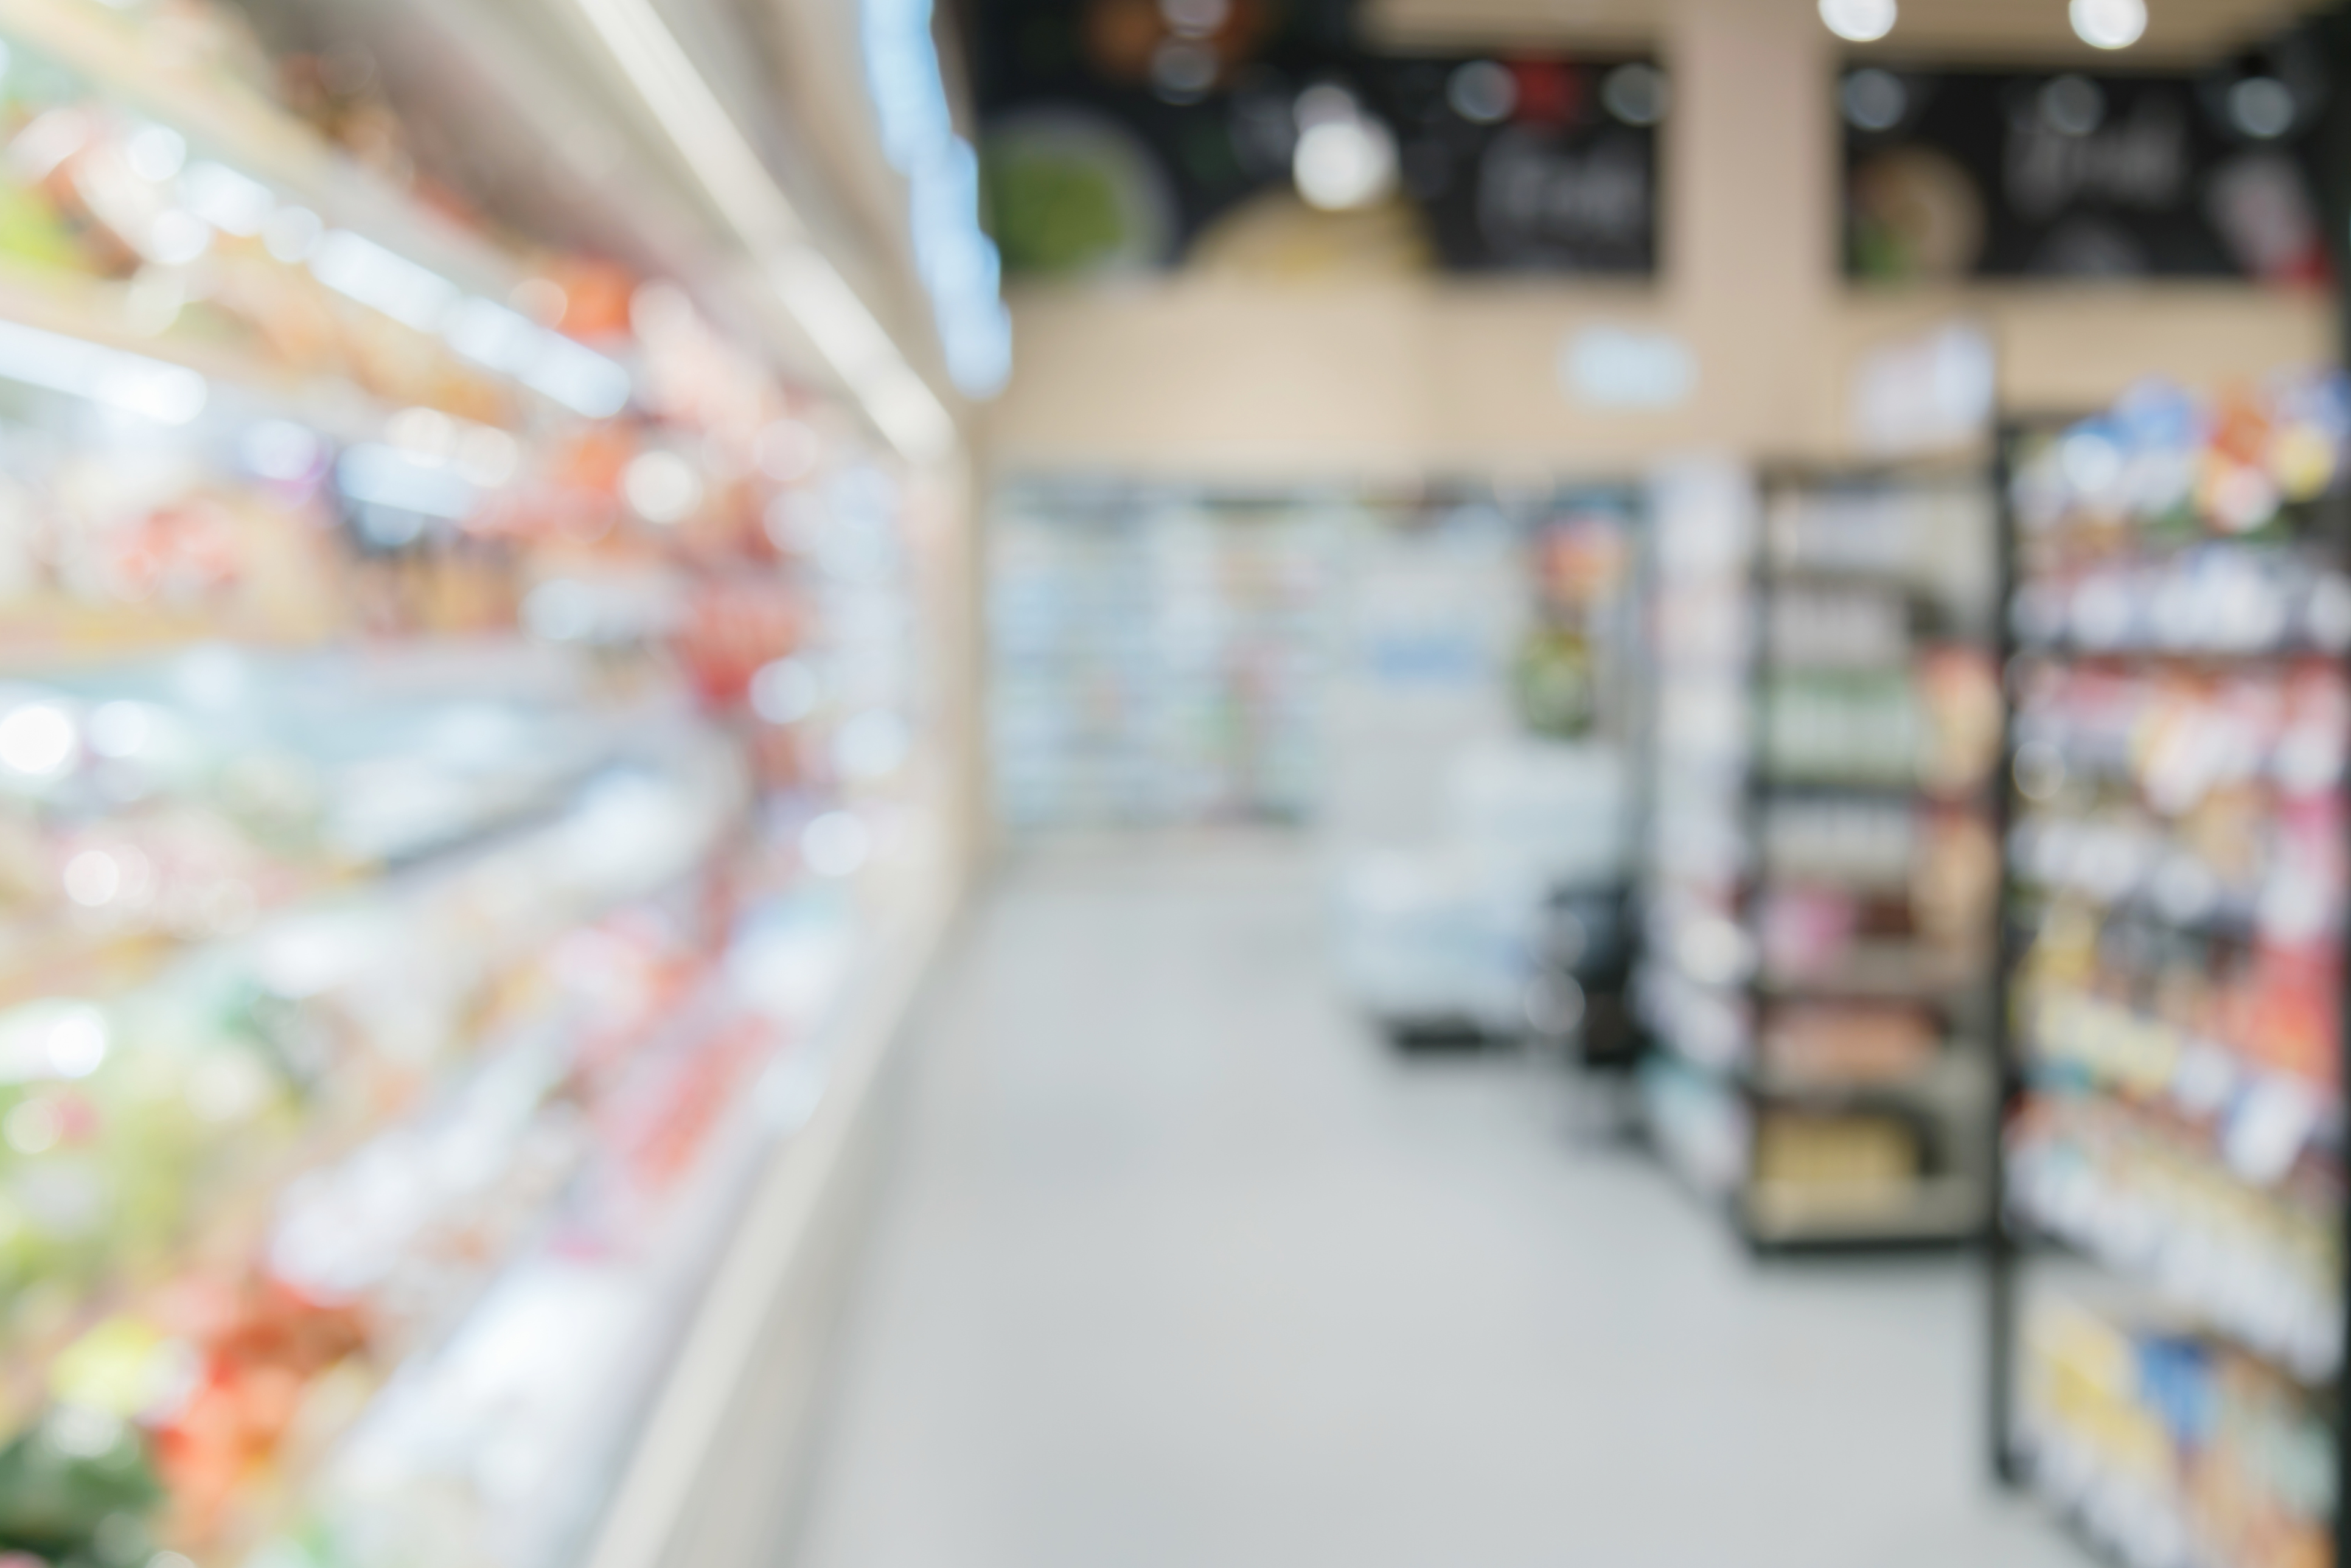 blur image background of convenience store